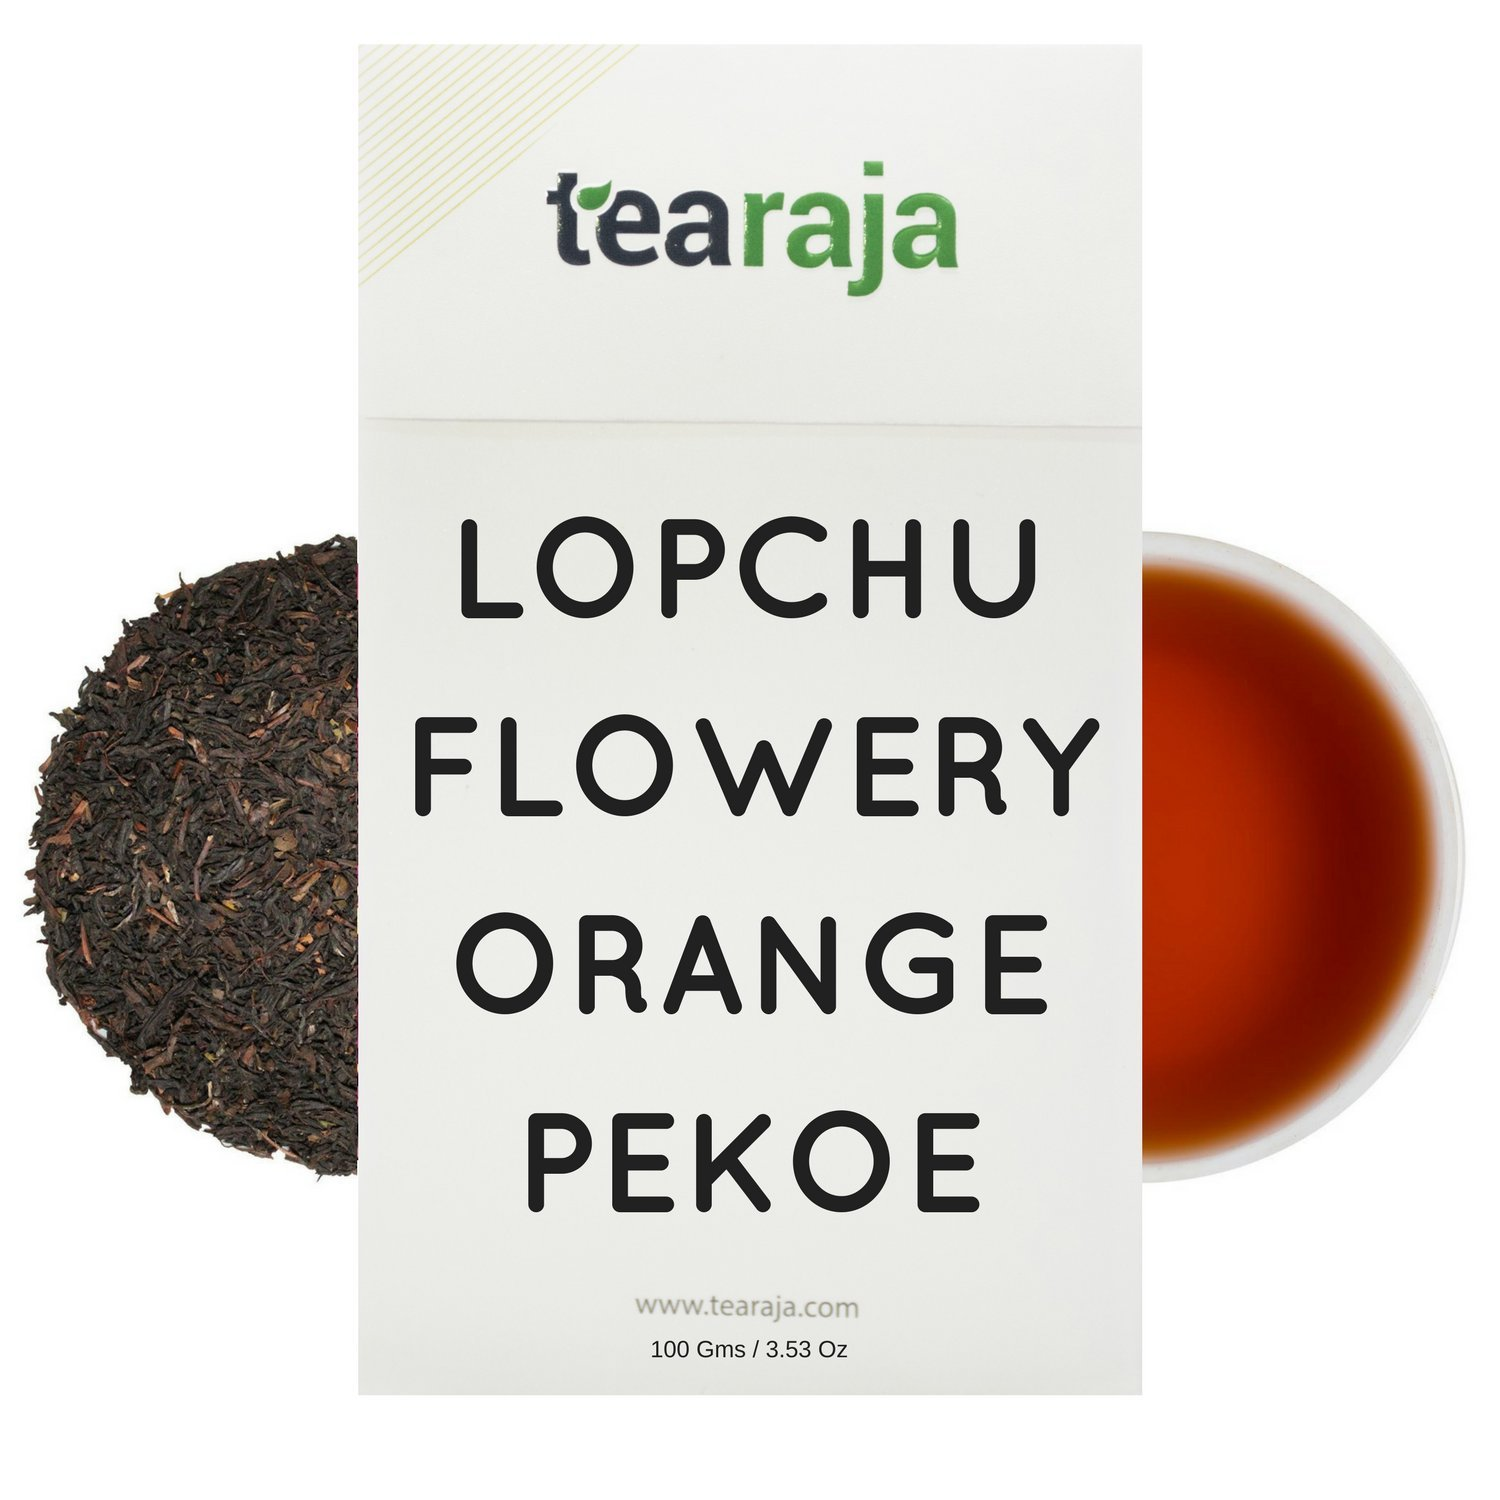 Tearaja Lopchu Flowery Orange Pekoe Darjeeling (3.5 Oz) Burnt Wood Flavour Tea, Shipped directly from India